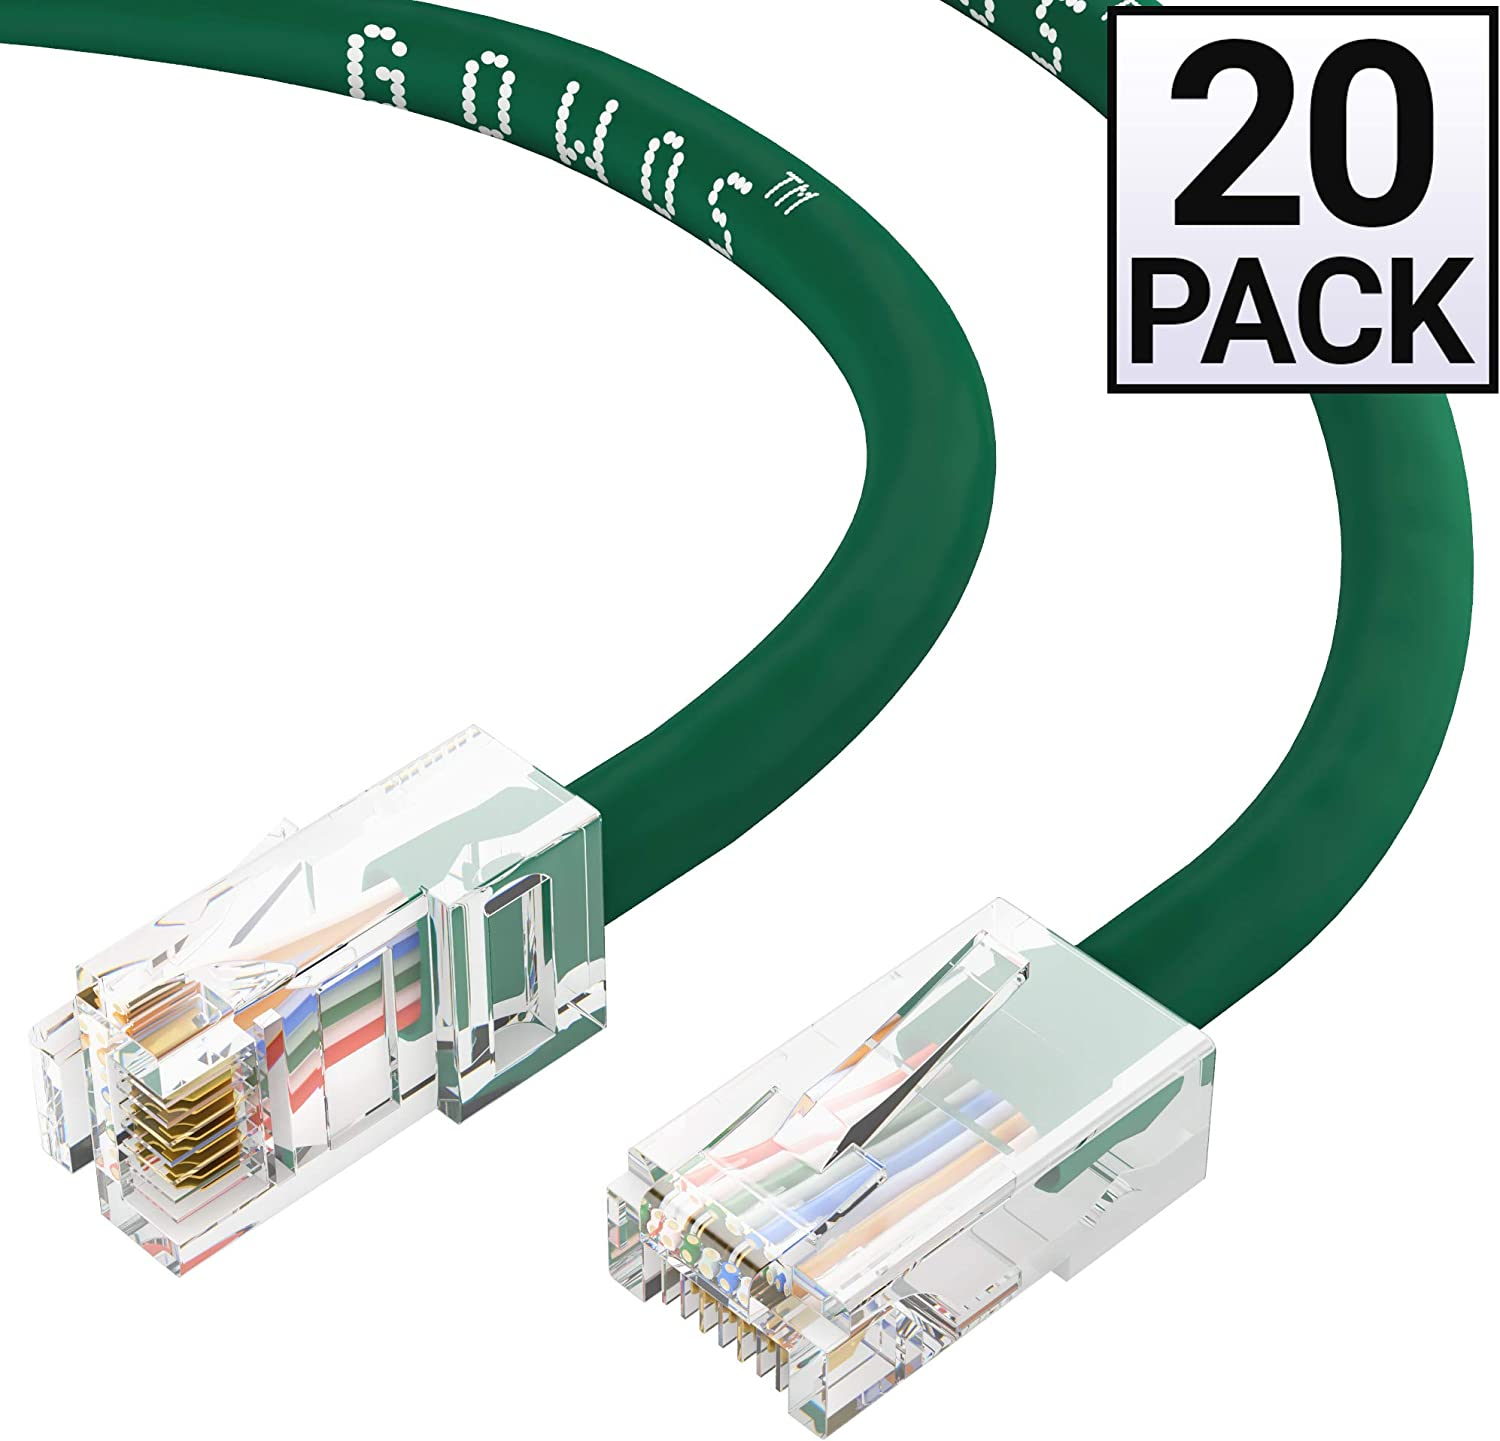 UTP Available in 28 Lengths and 10 Colors RJ45 10Gbps High Speed LAN Internet Patch Cord Computer Network Cable with Bootless Connector 10 Feet - Yellow GOWOS 5-Pack Cat5e Ethernet Cable